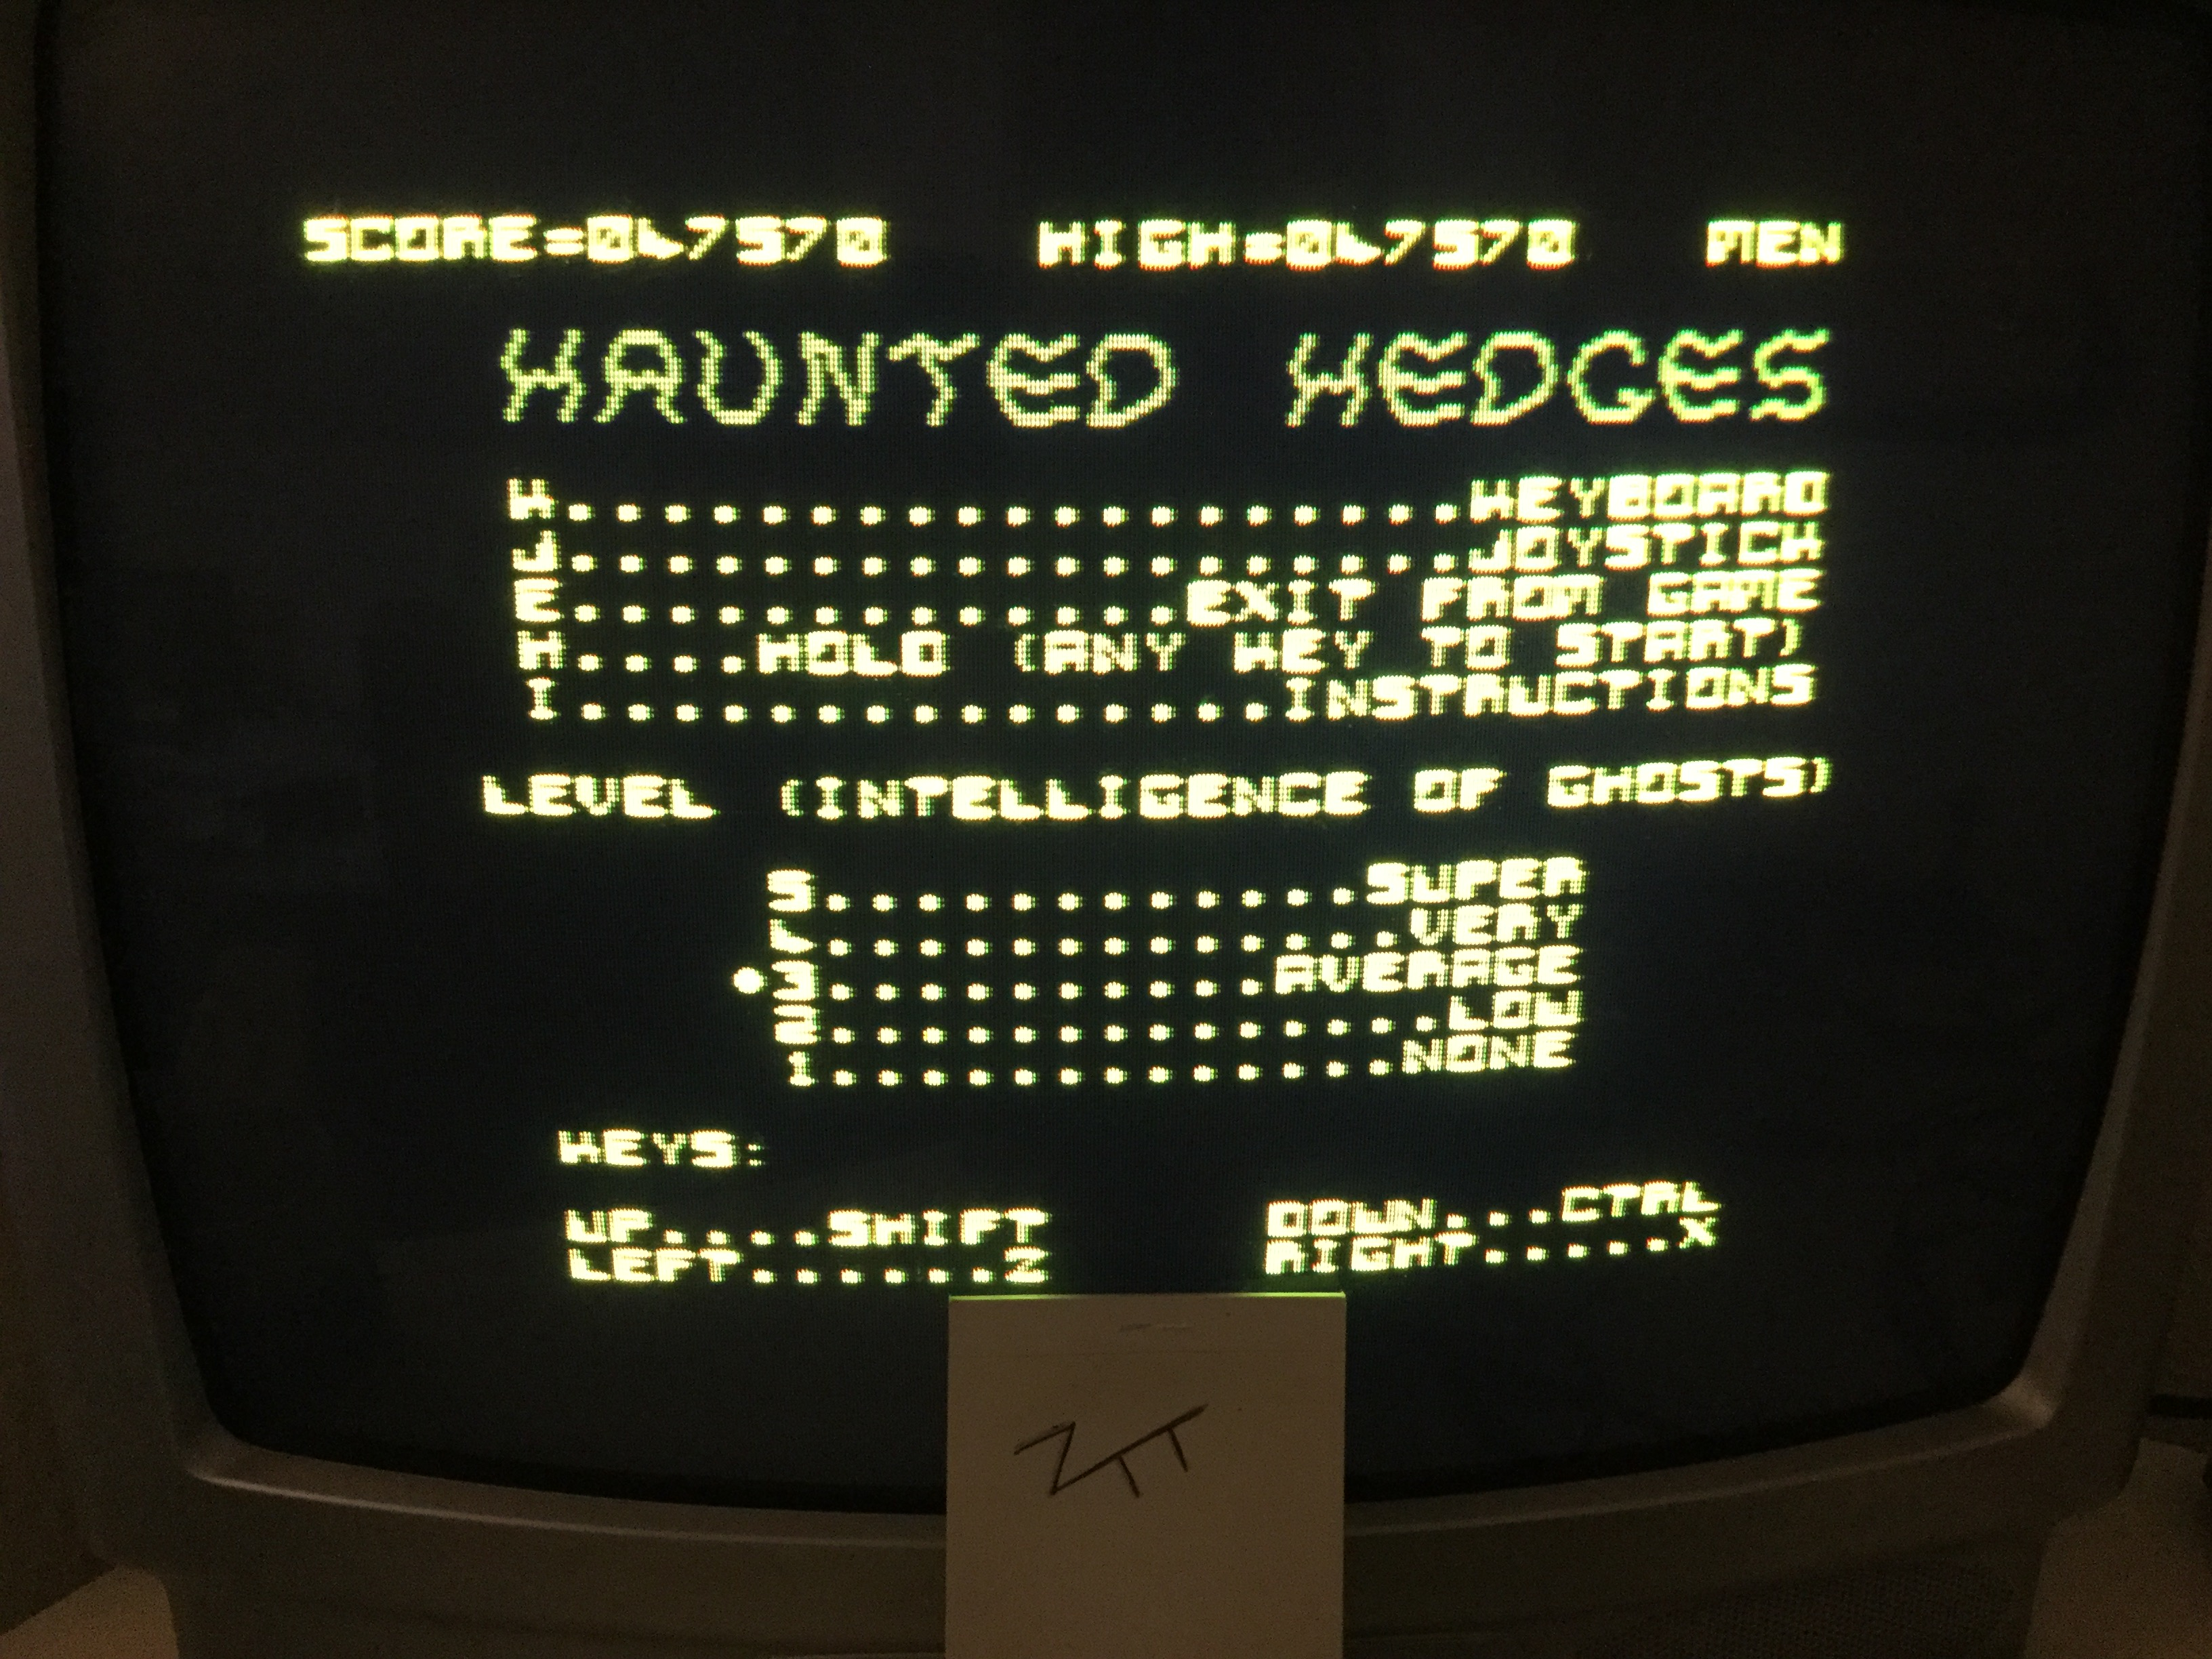 Frankie: Haunted Hedges [Average] (Amstrad CPC) 47,570 points on 2017-02-11 01:31:14